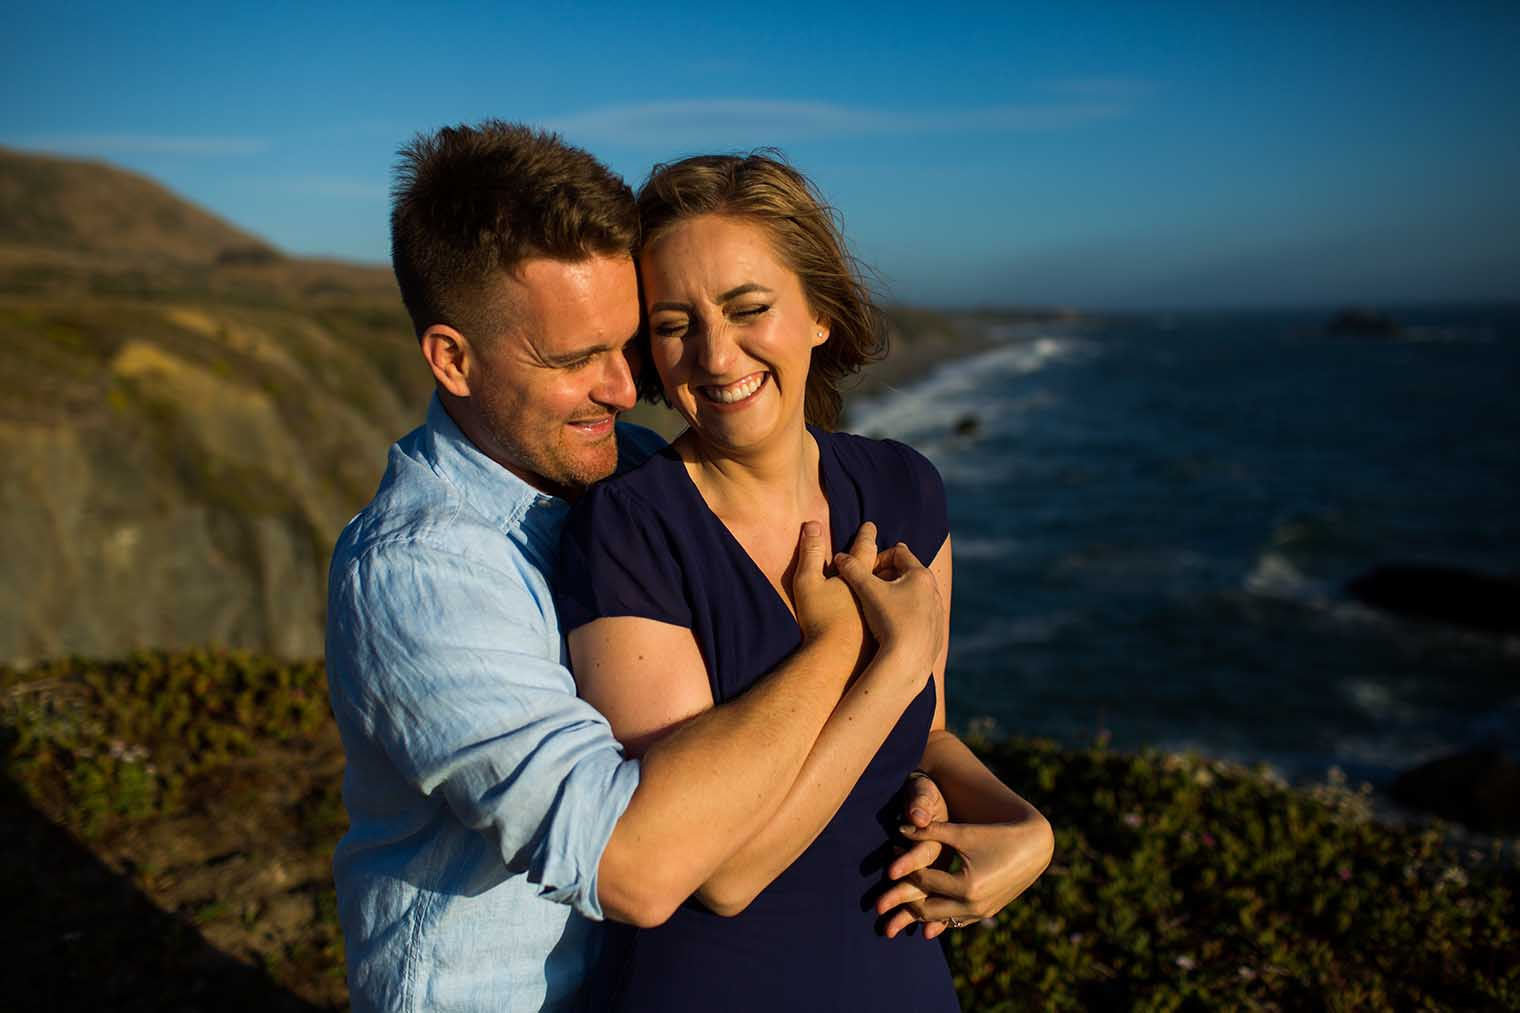 Engagement Session at Sonoma Coast State Park